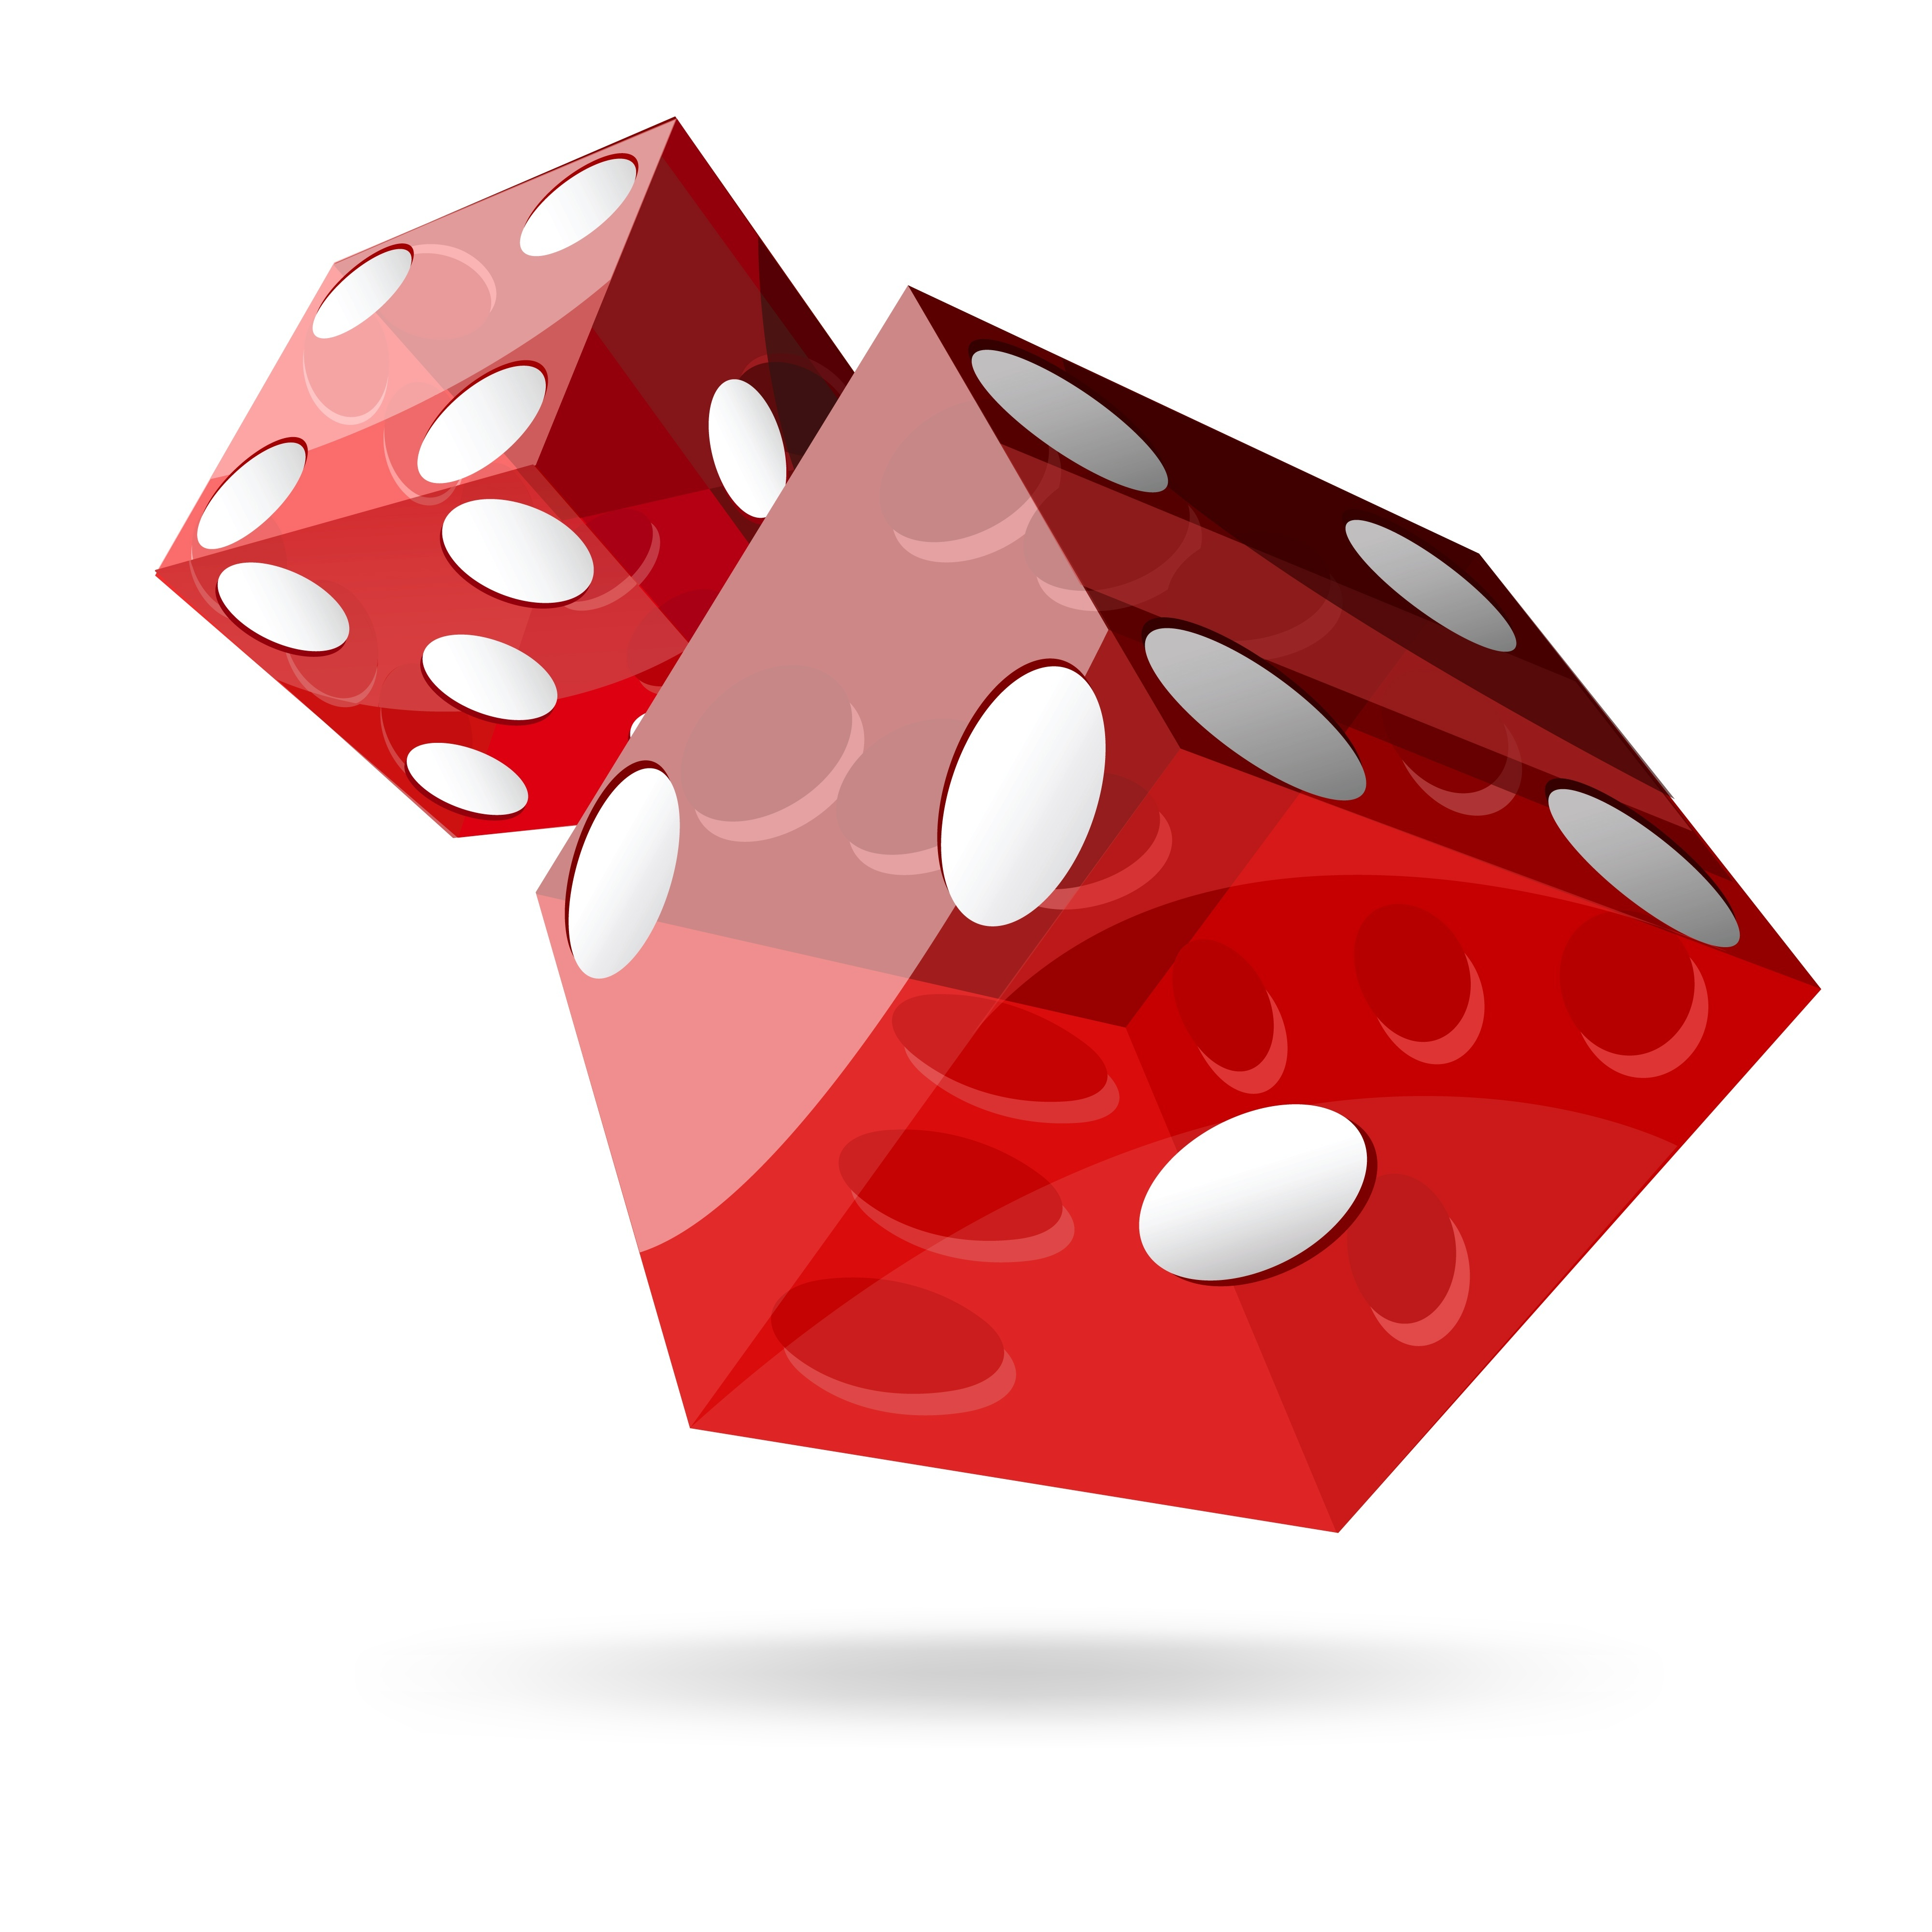 12819924 - two red dice cubes on white background